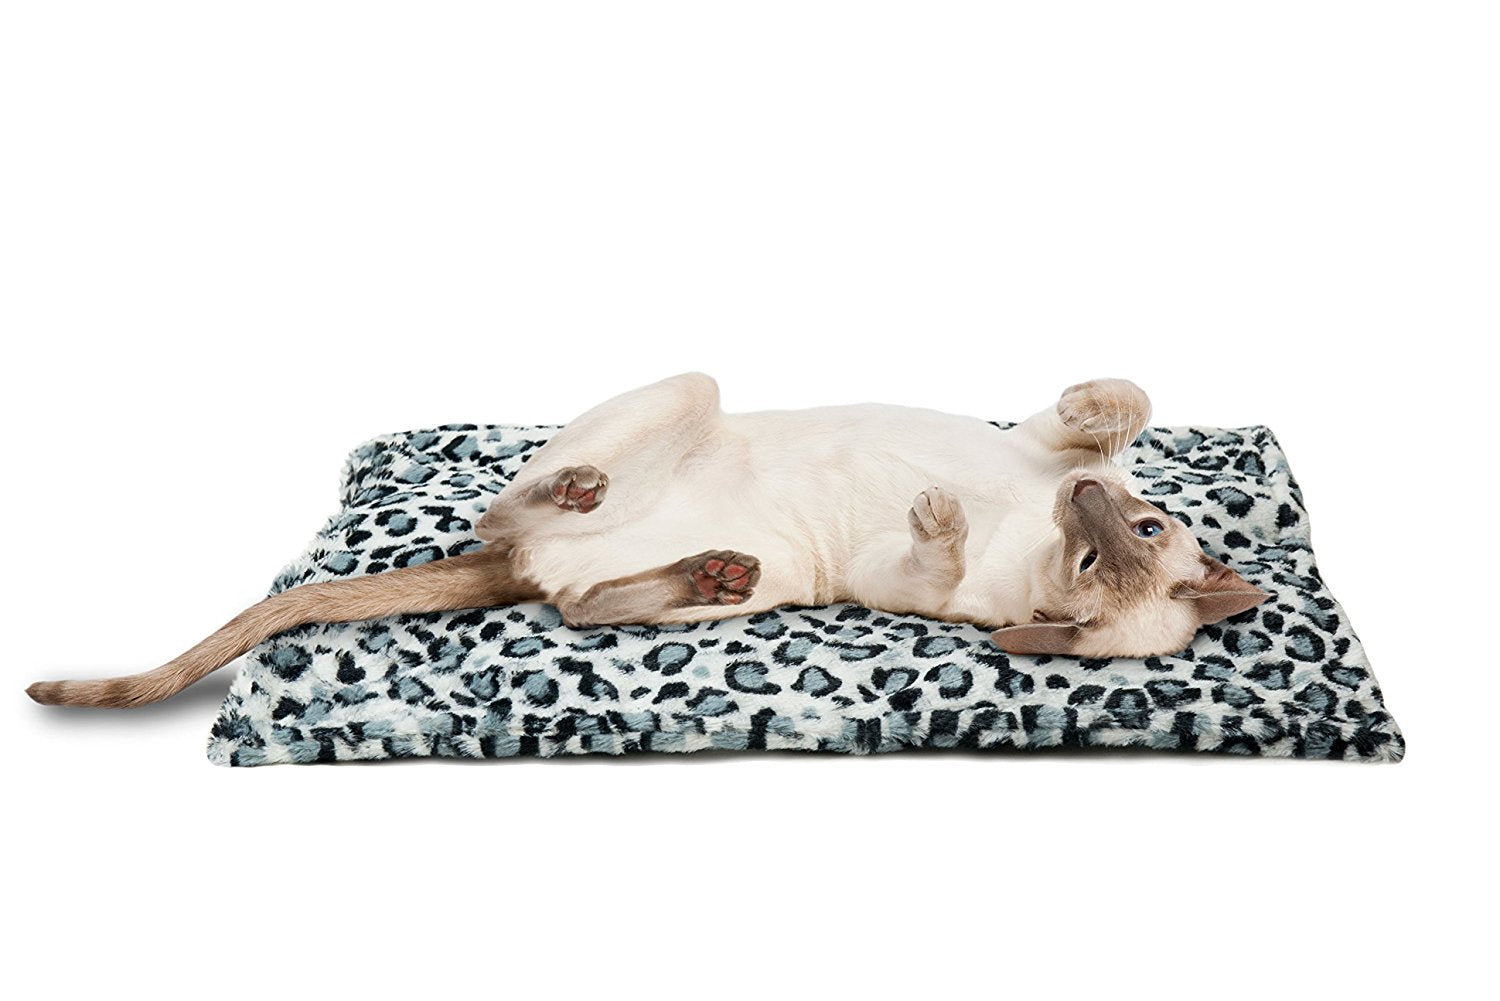 large picture plush mat puppy mattress p washable orthopedic bed of pet dog cushion comfort